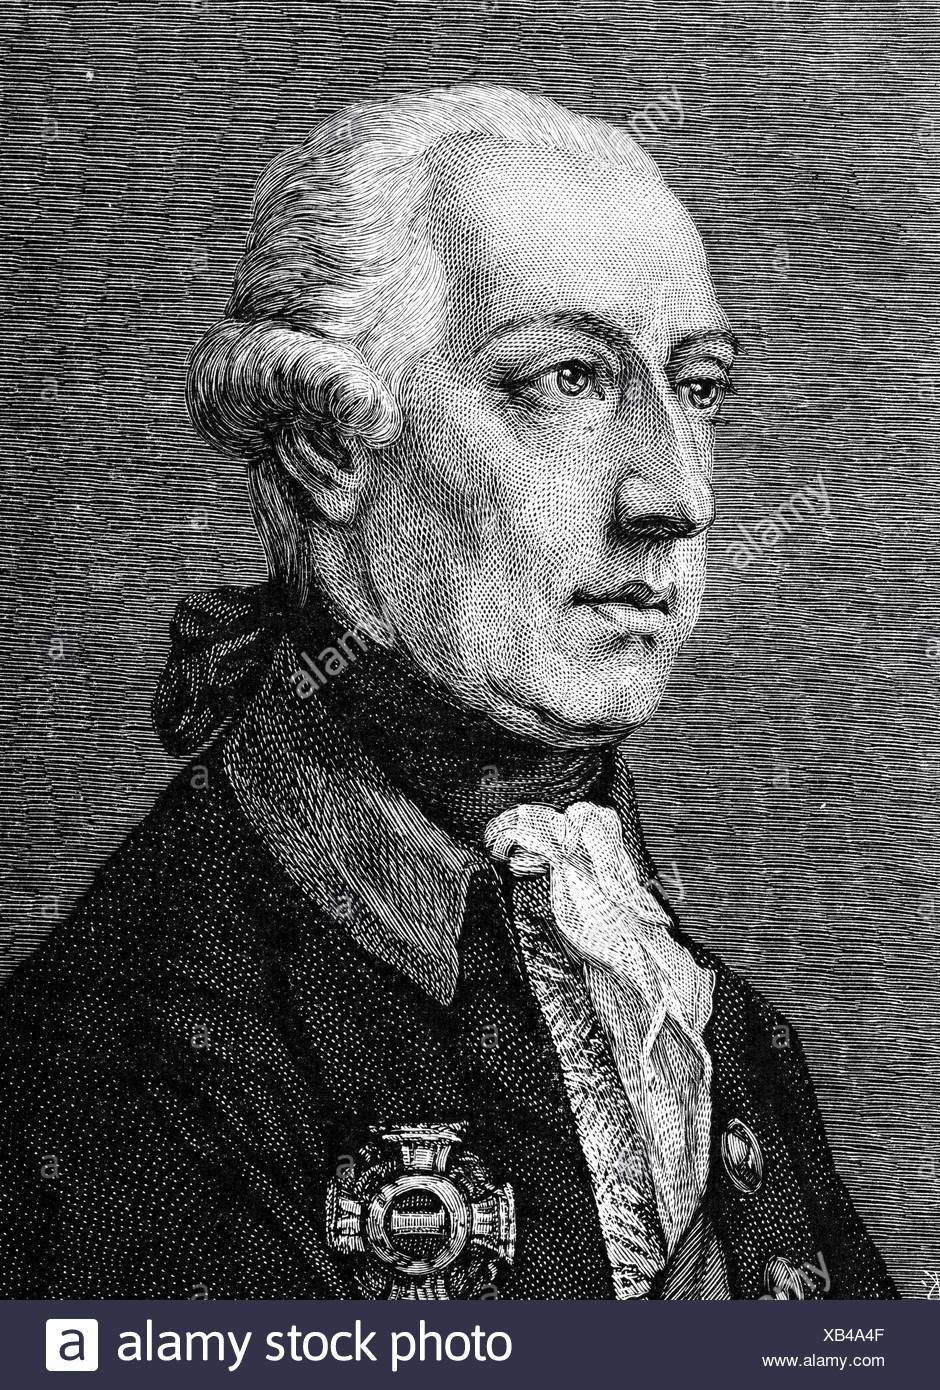 Joseph II, 13.3.1741 - 20.2.1790, Holy Roman Emperor 18.8.1765 - 20.2.1790, portrait, wood engraving, 19th century, , Additional-Rights-Clearances-NA Stock Photo